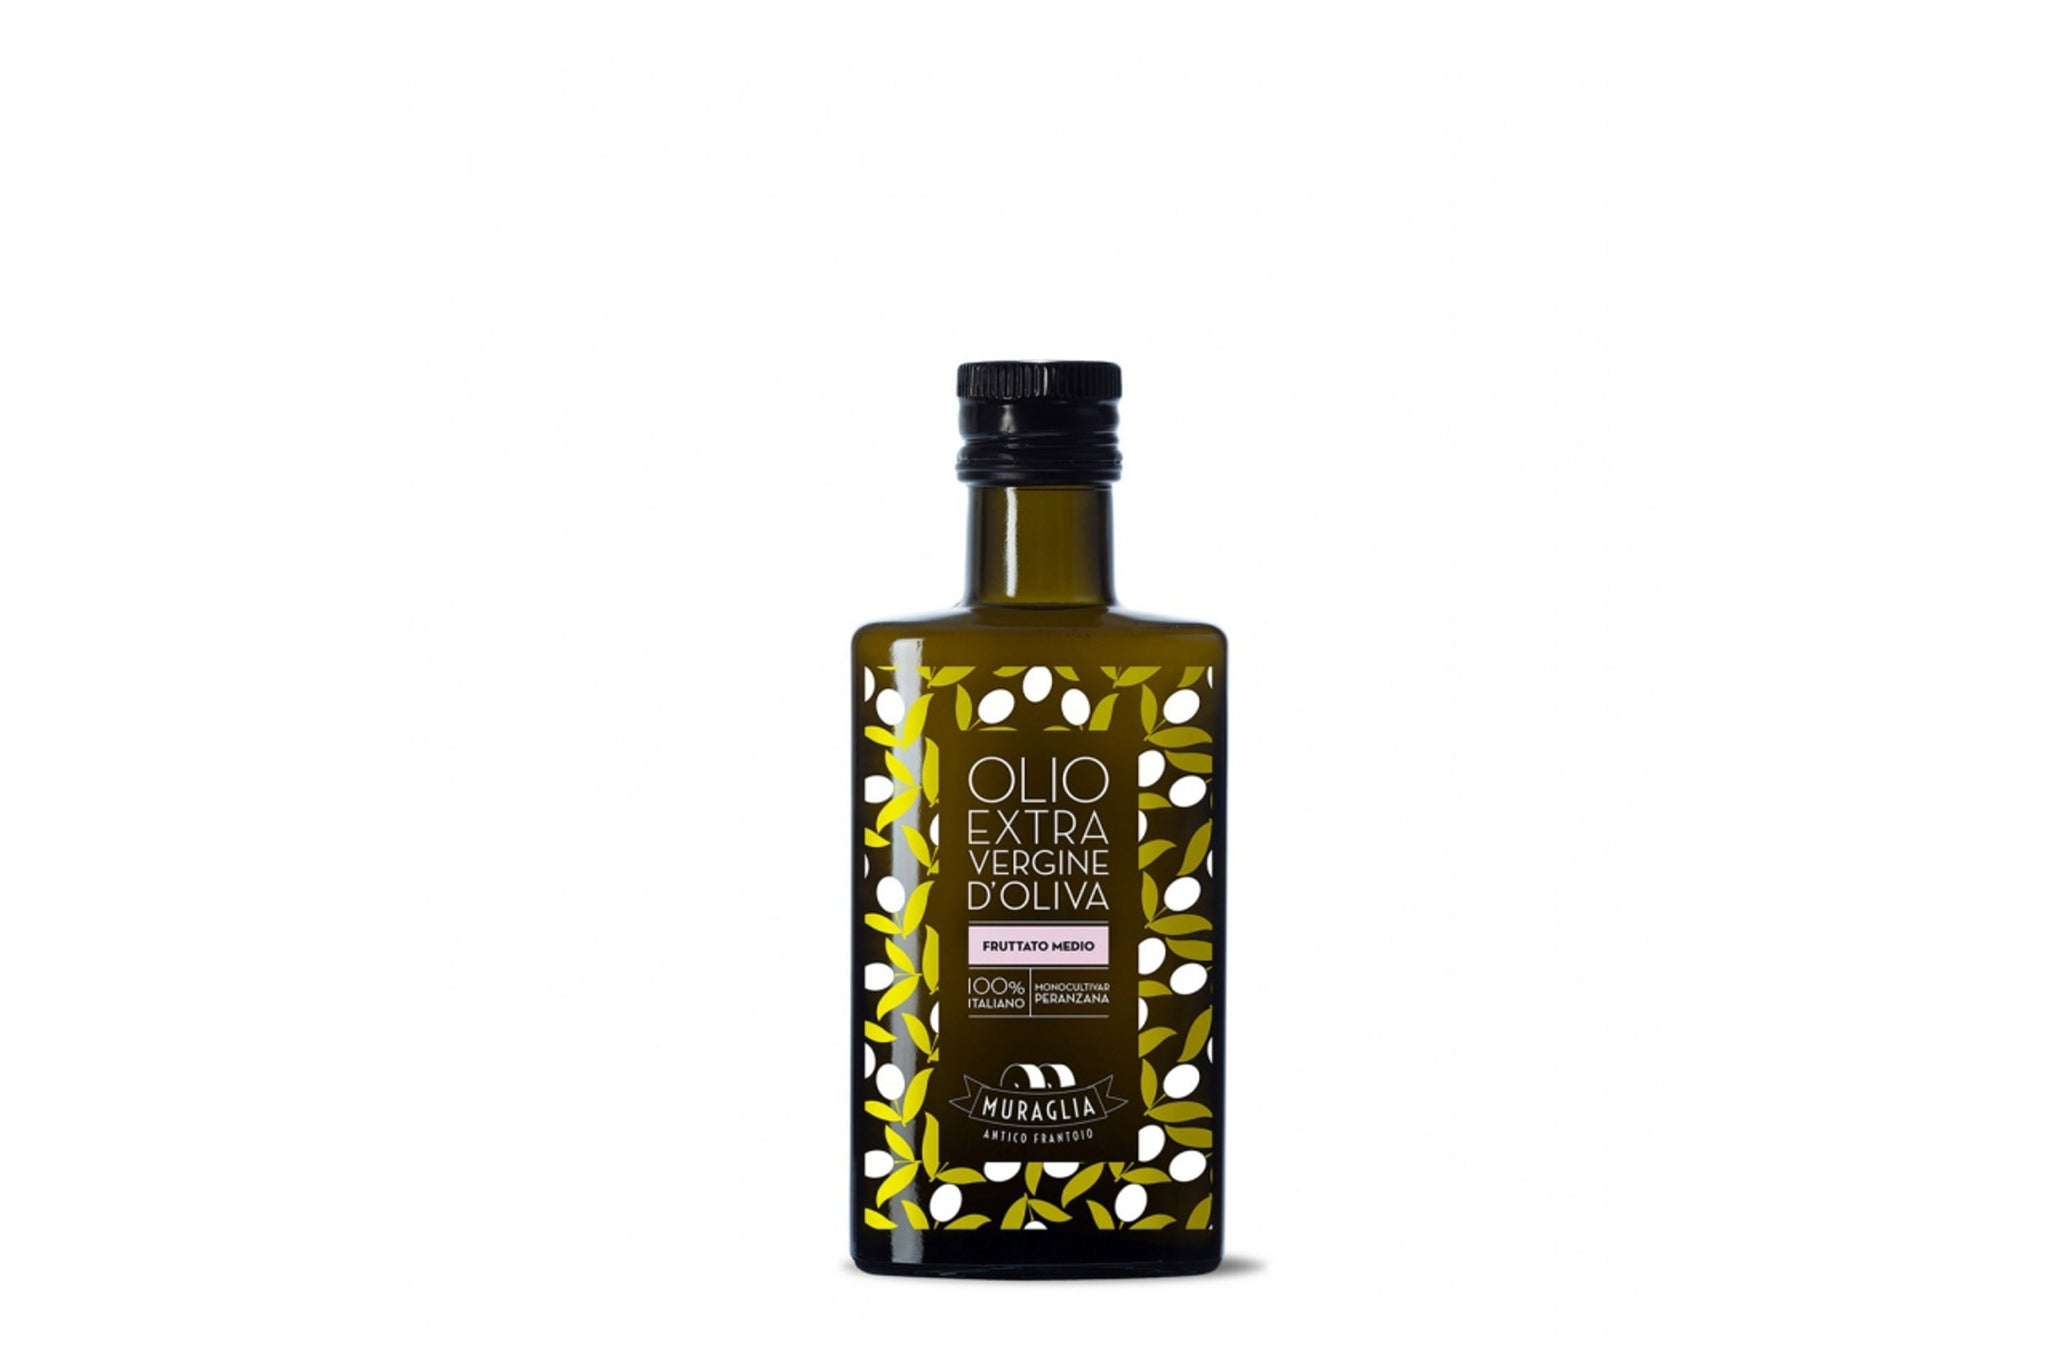 Frantoio Muraglia Essenza Medium Fruity Italian Extra Virgin Olive Oil 250ml